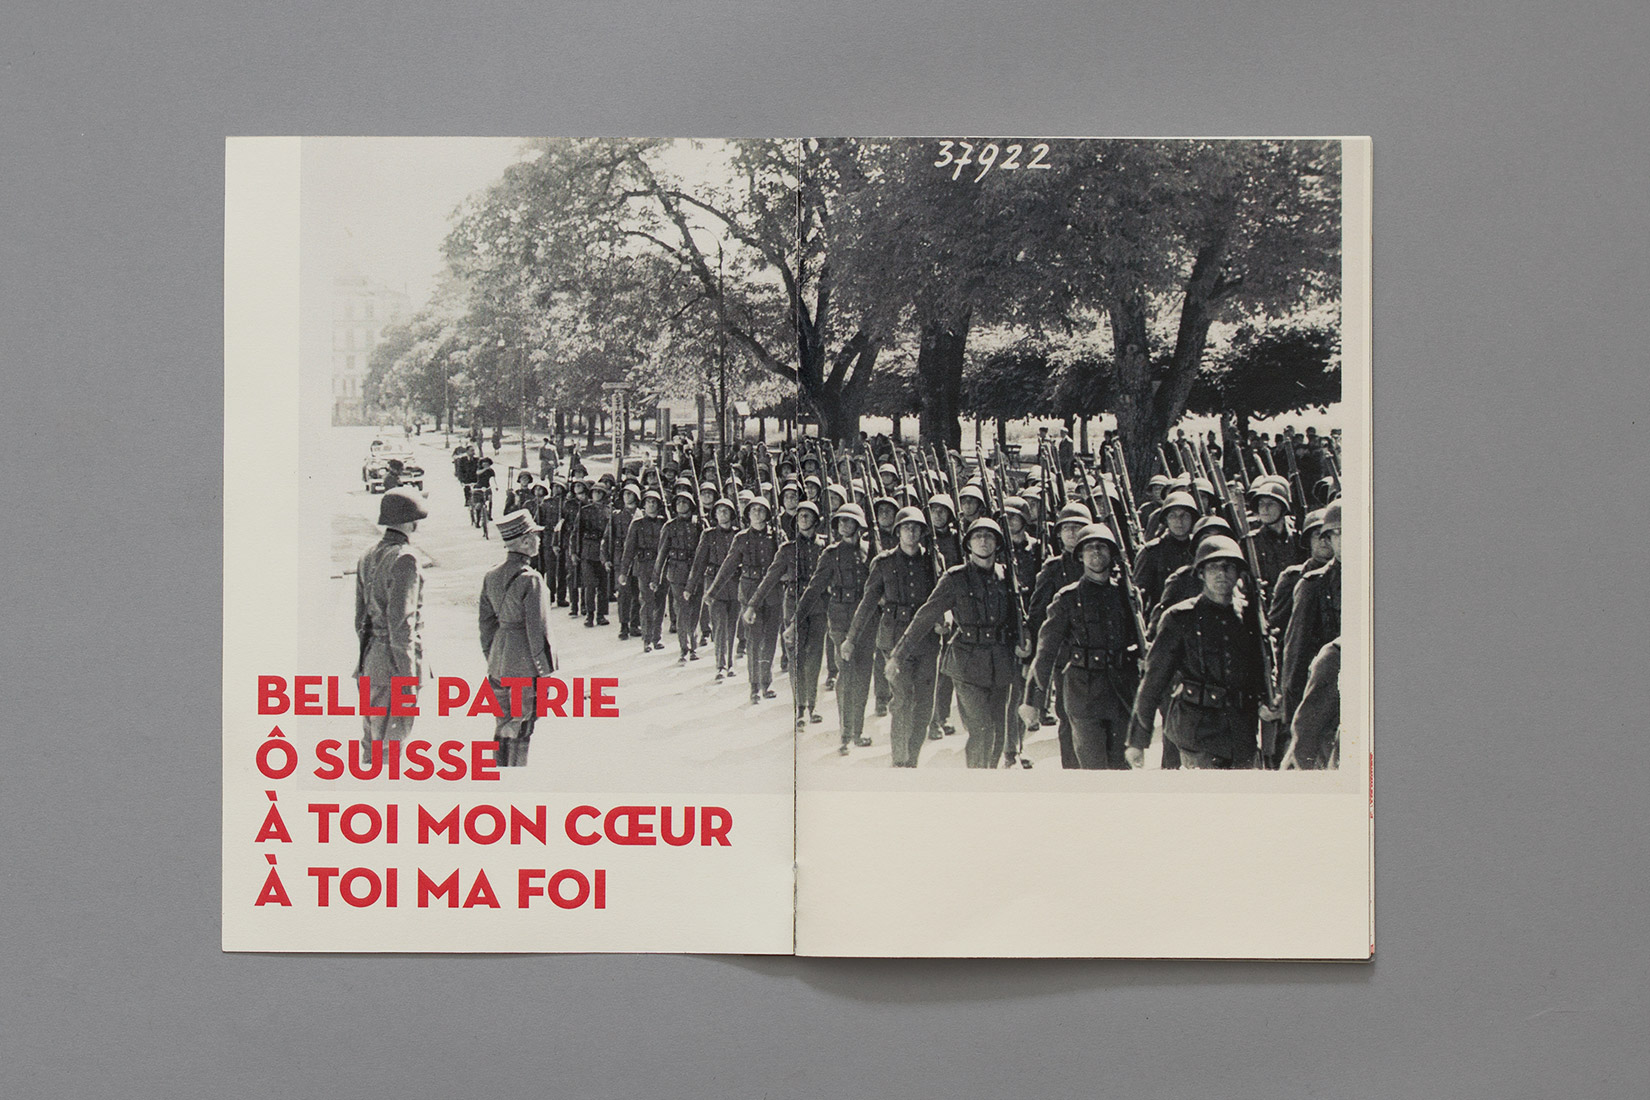 Manual for the perfect little soldier, military parade, postcard, Neutra, Belle patrie, ô Suisse, à toi mon coeur, à toi ma foi